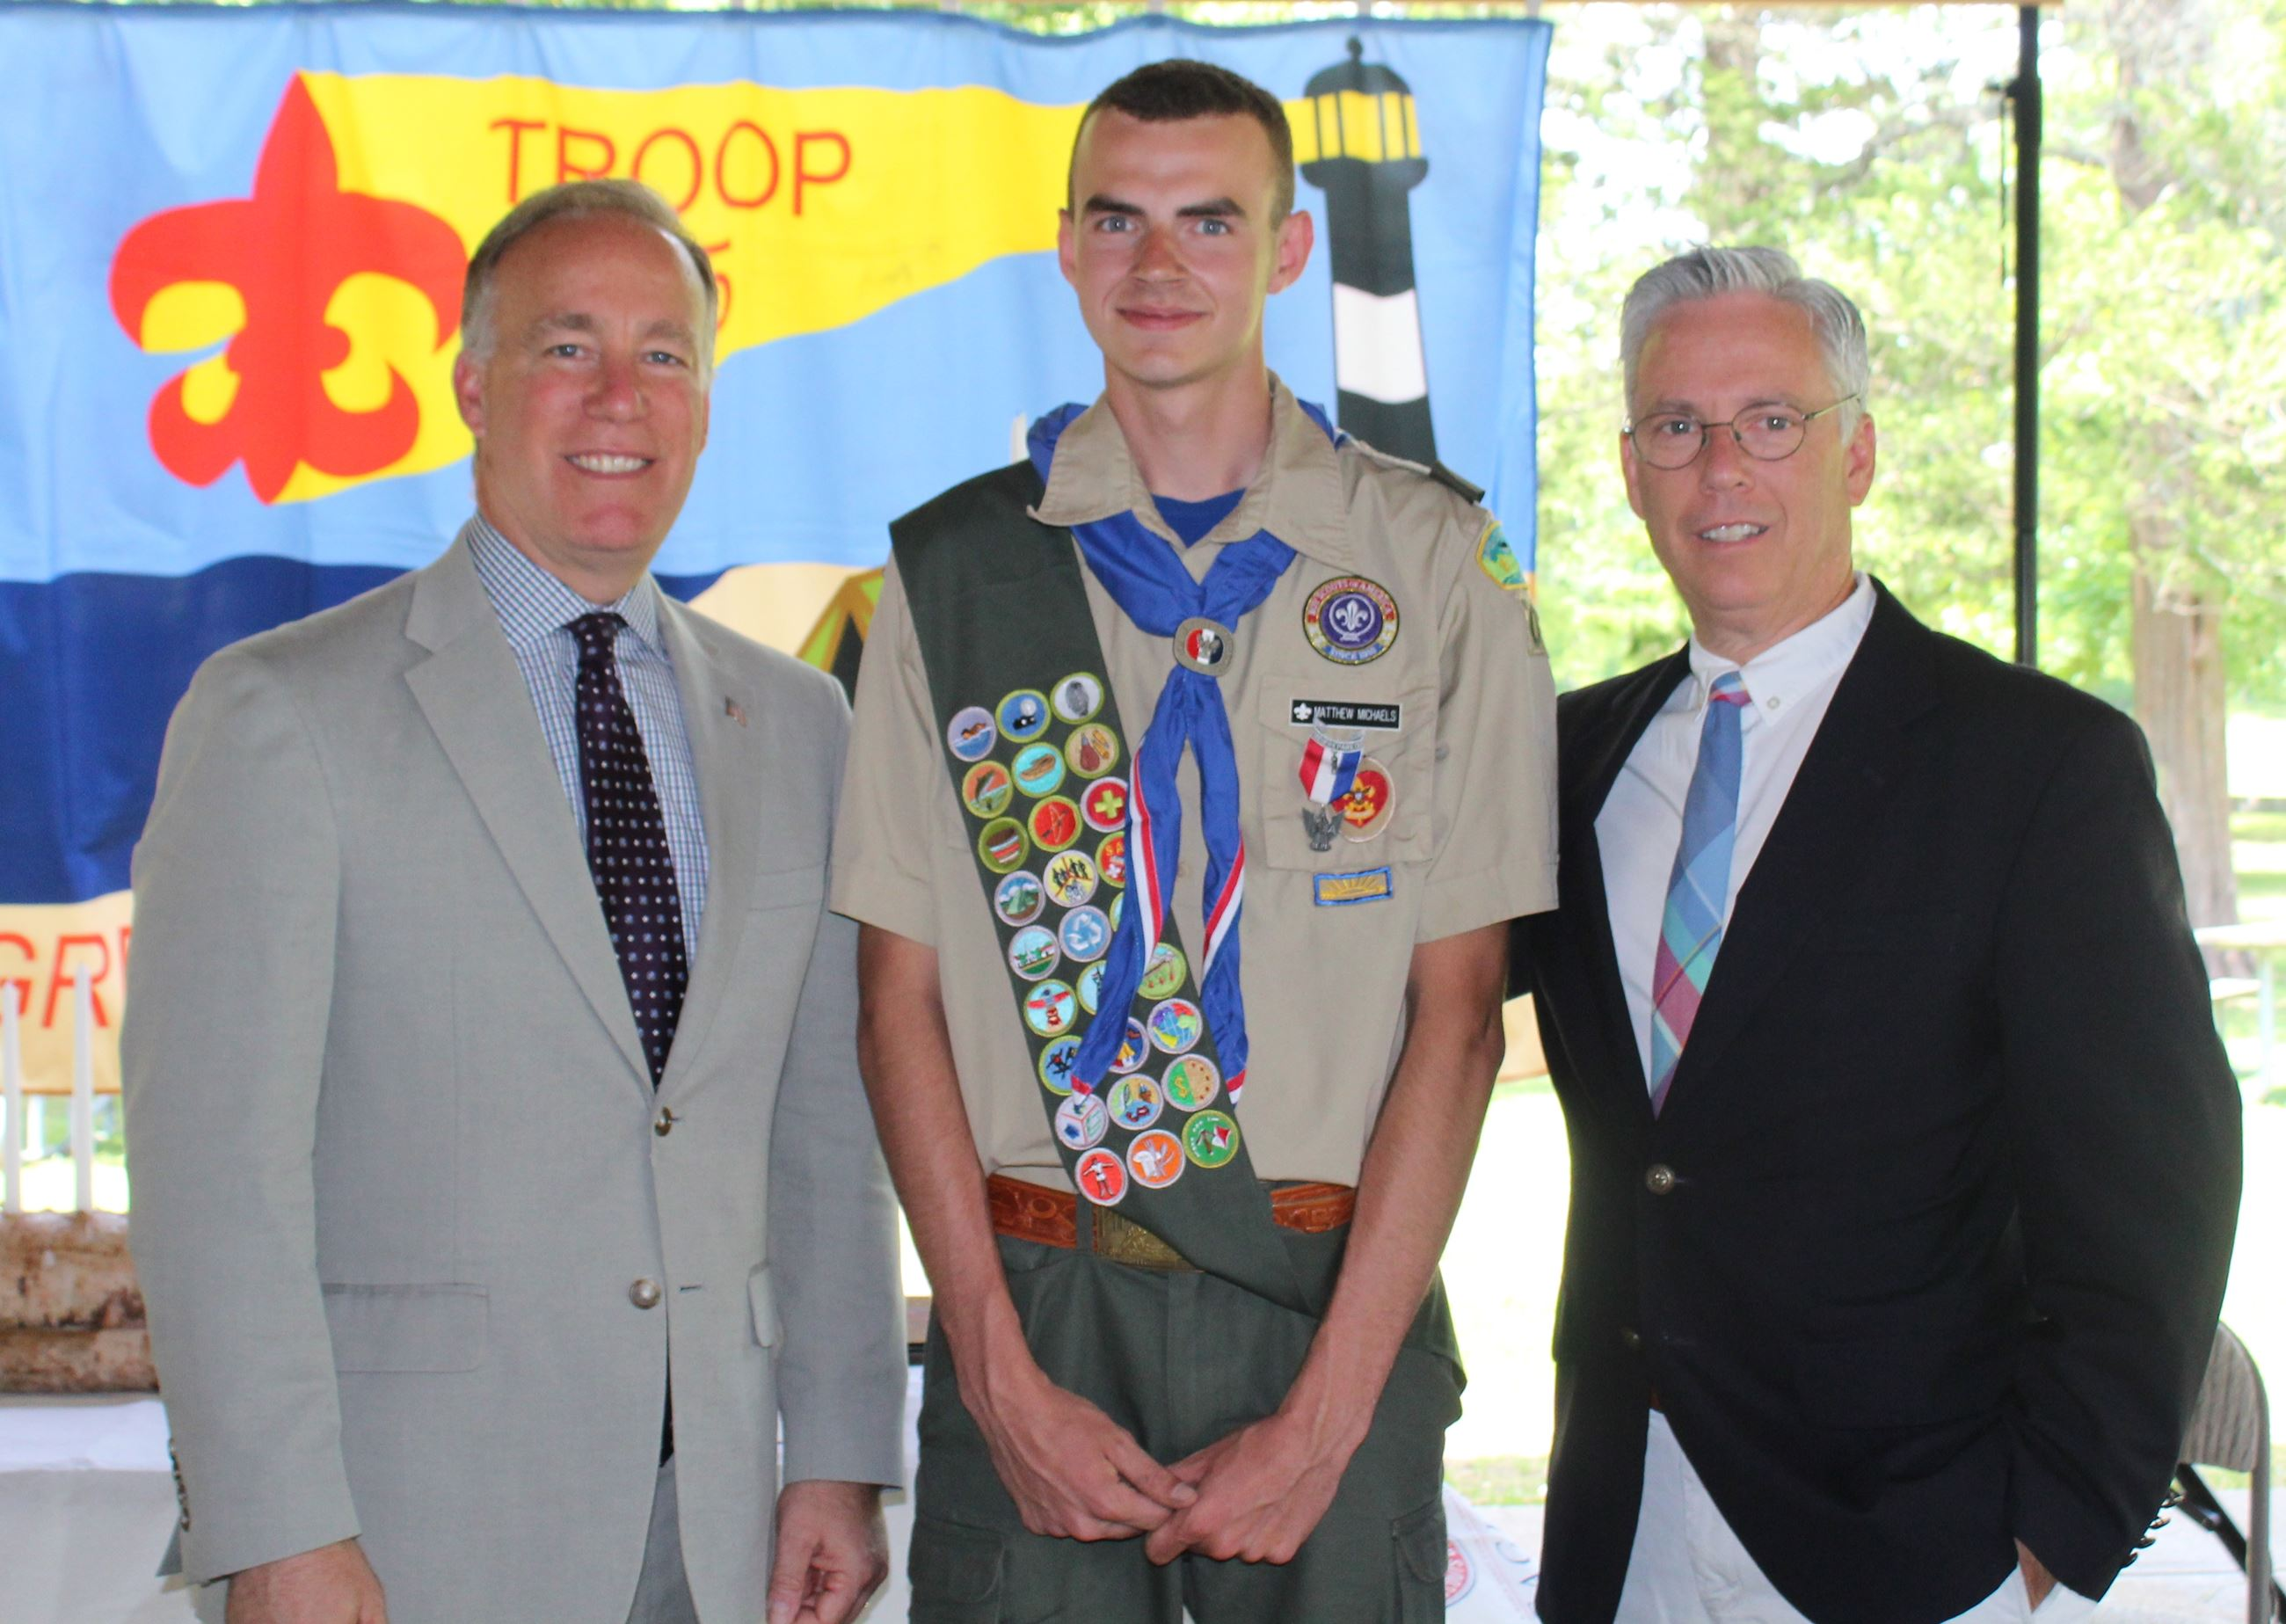 Eagle Scout Michaels with Leg Cilmi and Flotteron